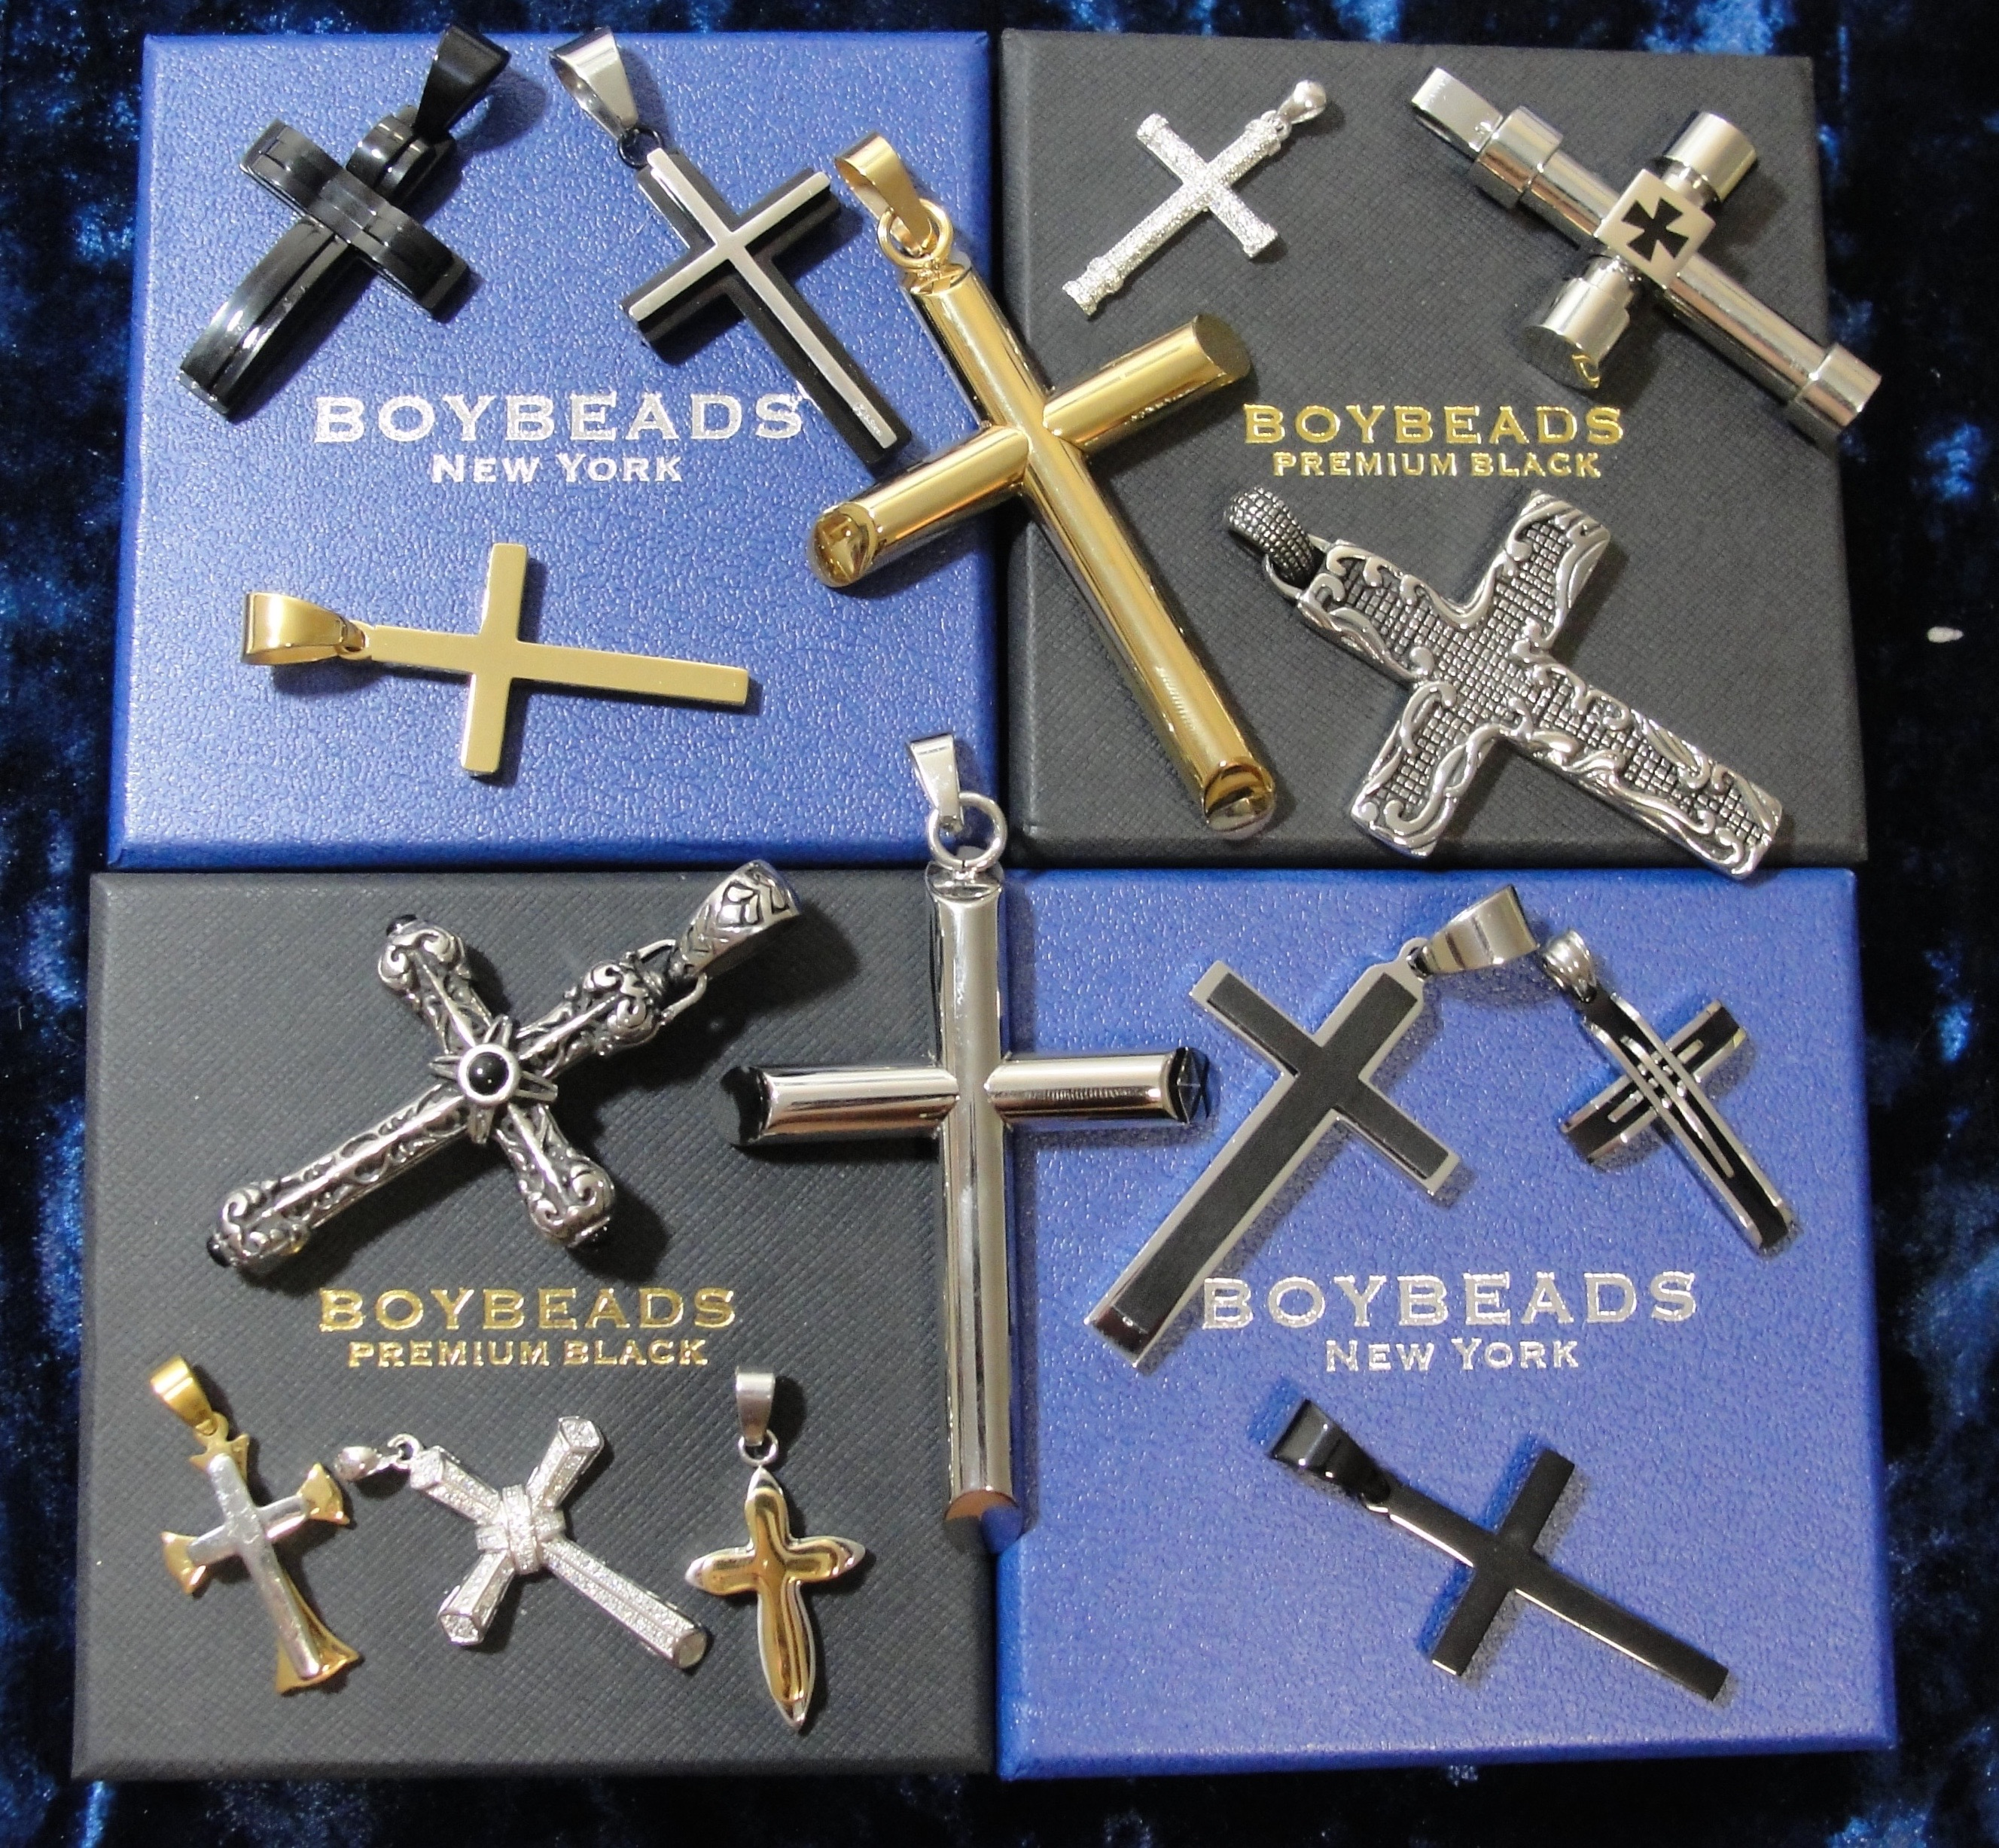 New Cross Necklaces ing Soon to BOYBEADS BOYBEADS